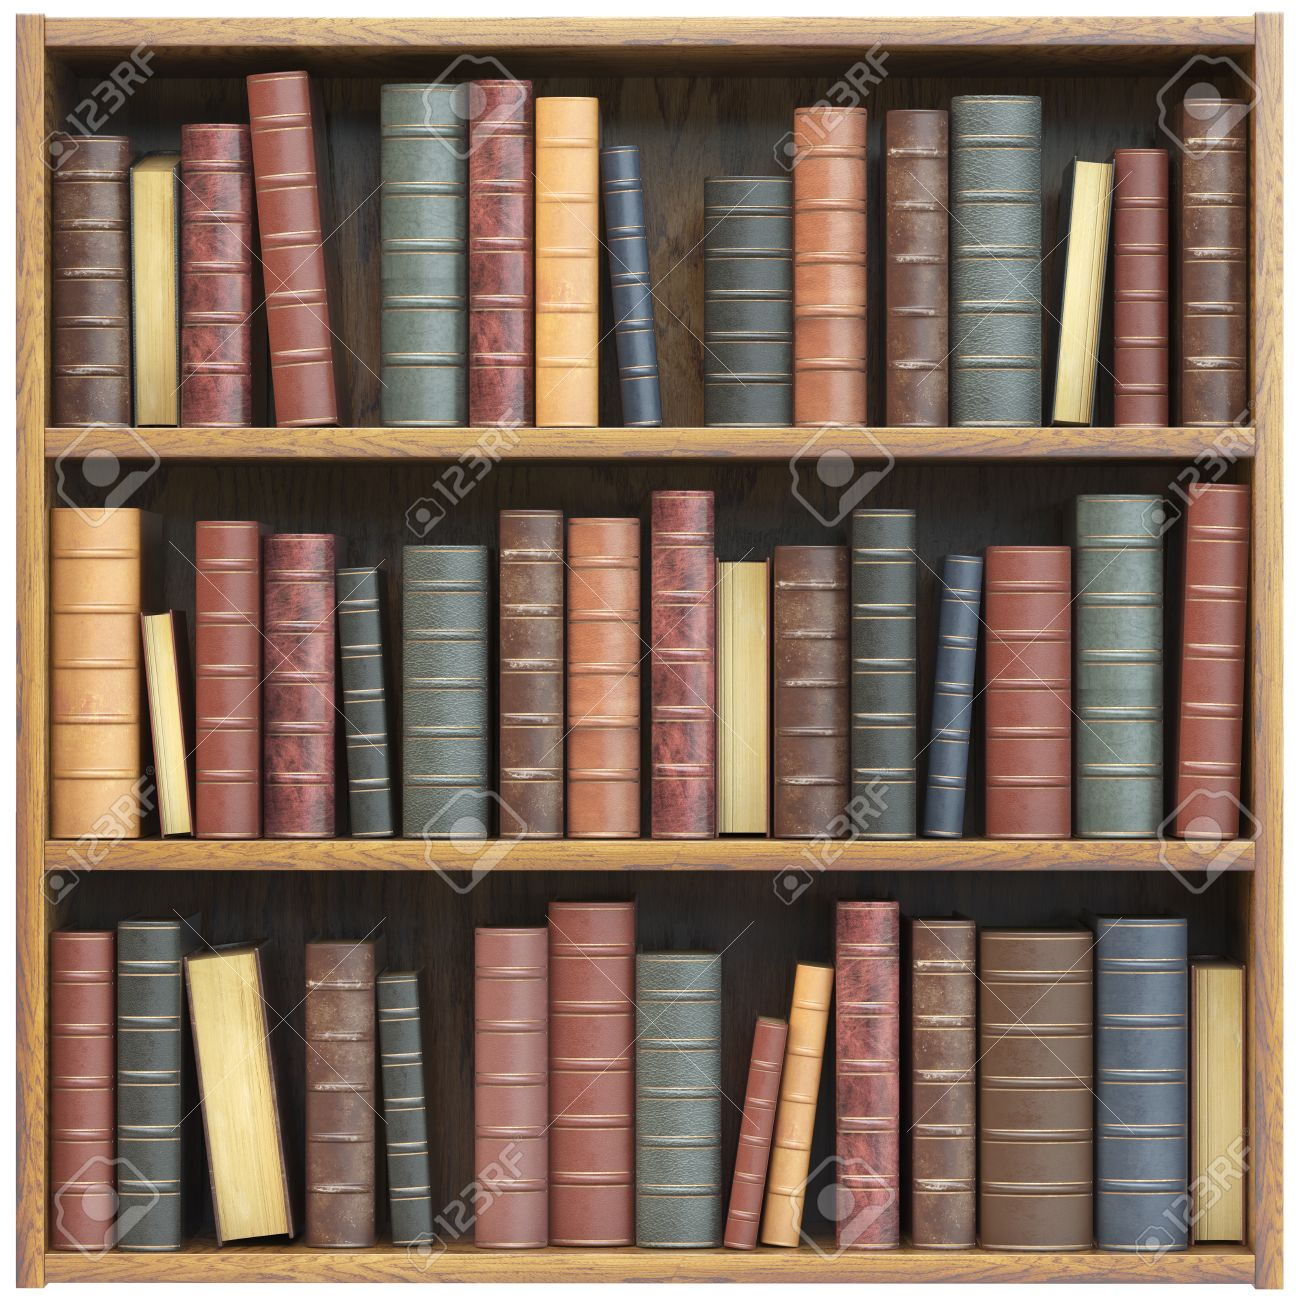 Bookshelf With Old Books Isolated On White Background Education